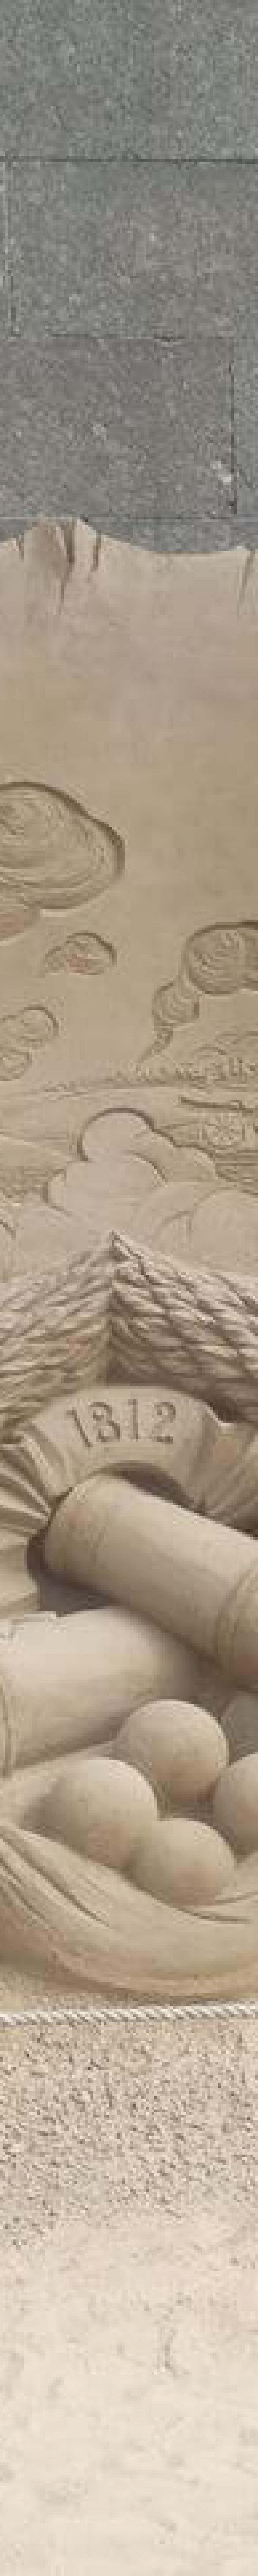 war of 1812 stone carving